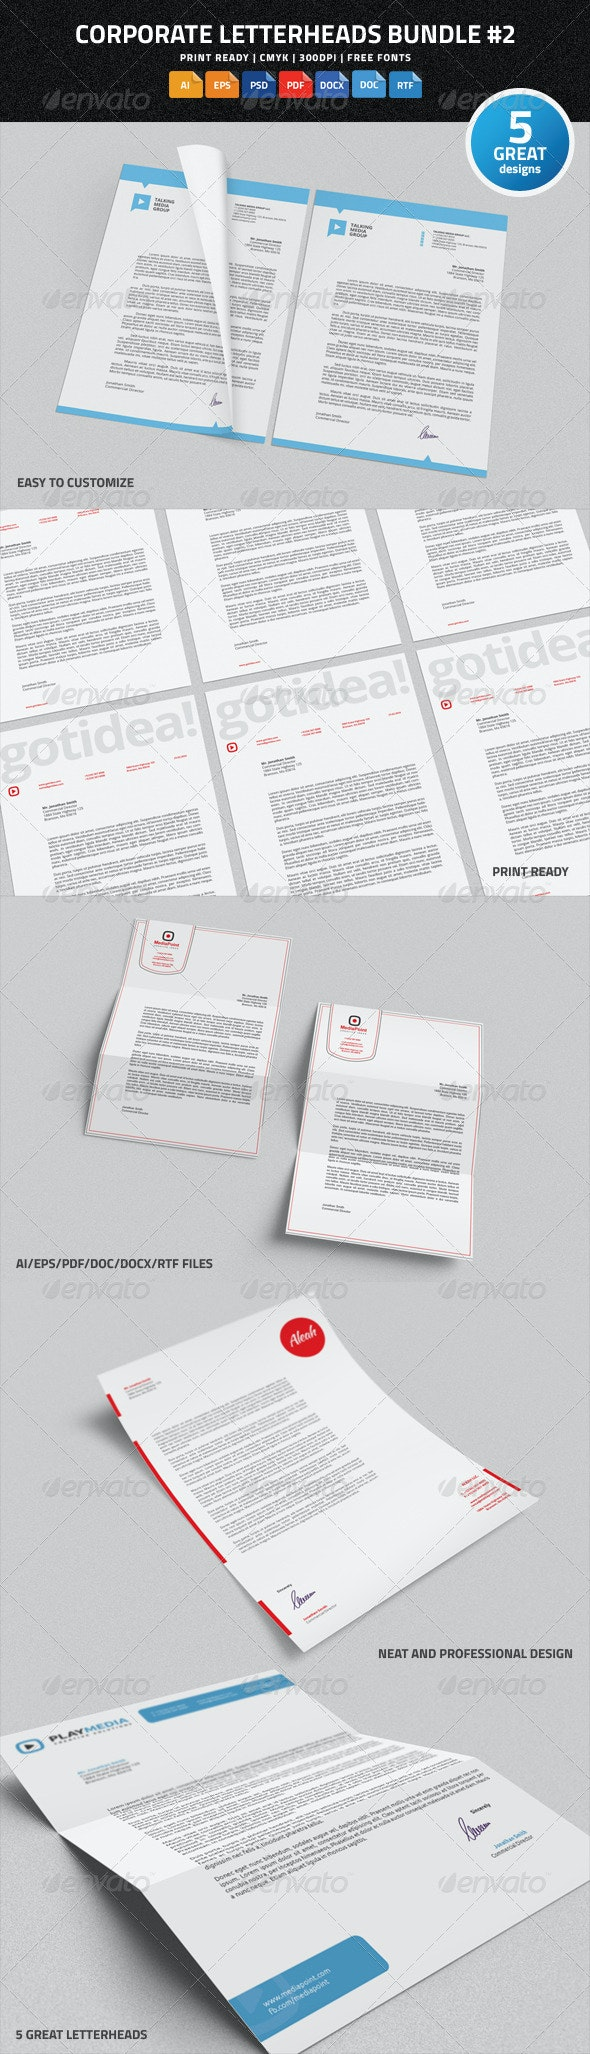 Corporate Letterheads Bundle #2 - Stationery Print Templates